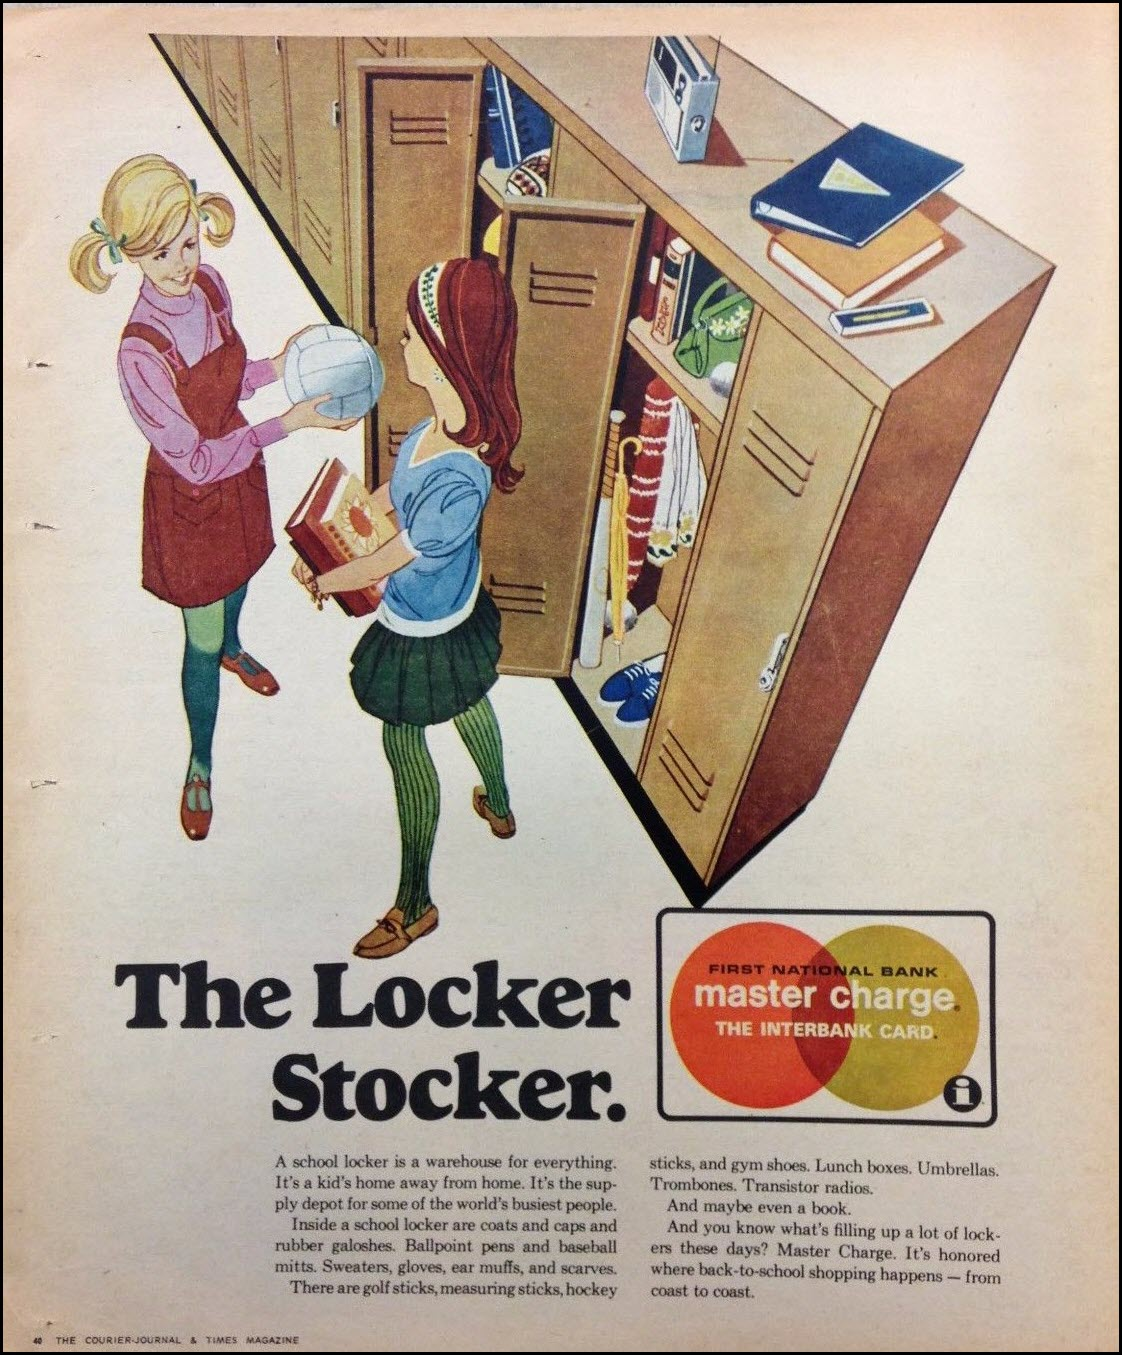 Vintage back-to-school advertisement: Mastercharge, 1969